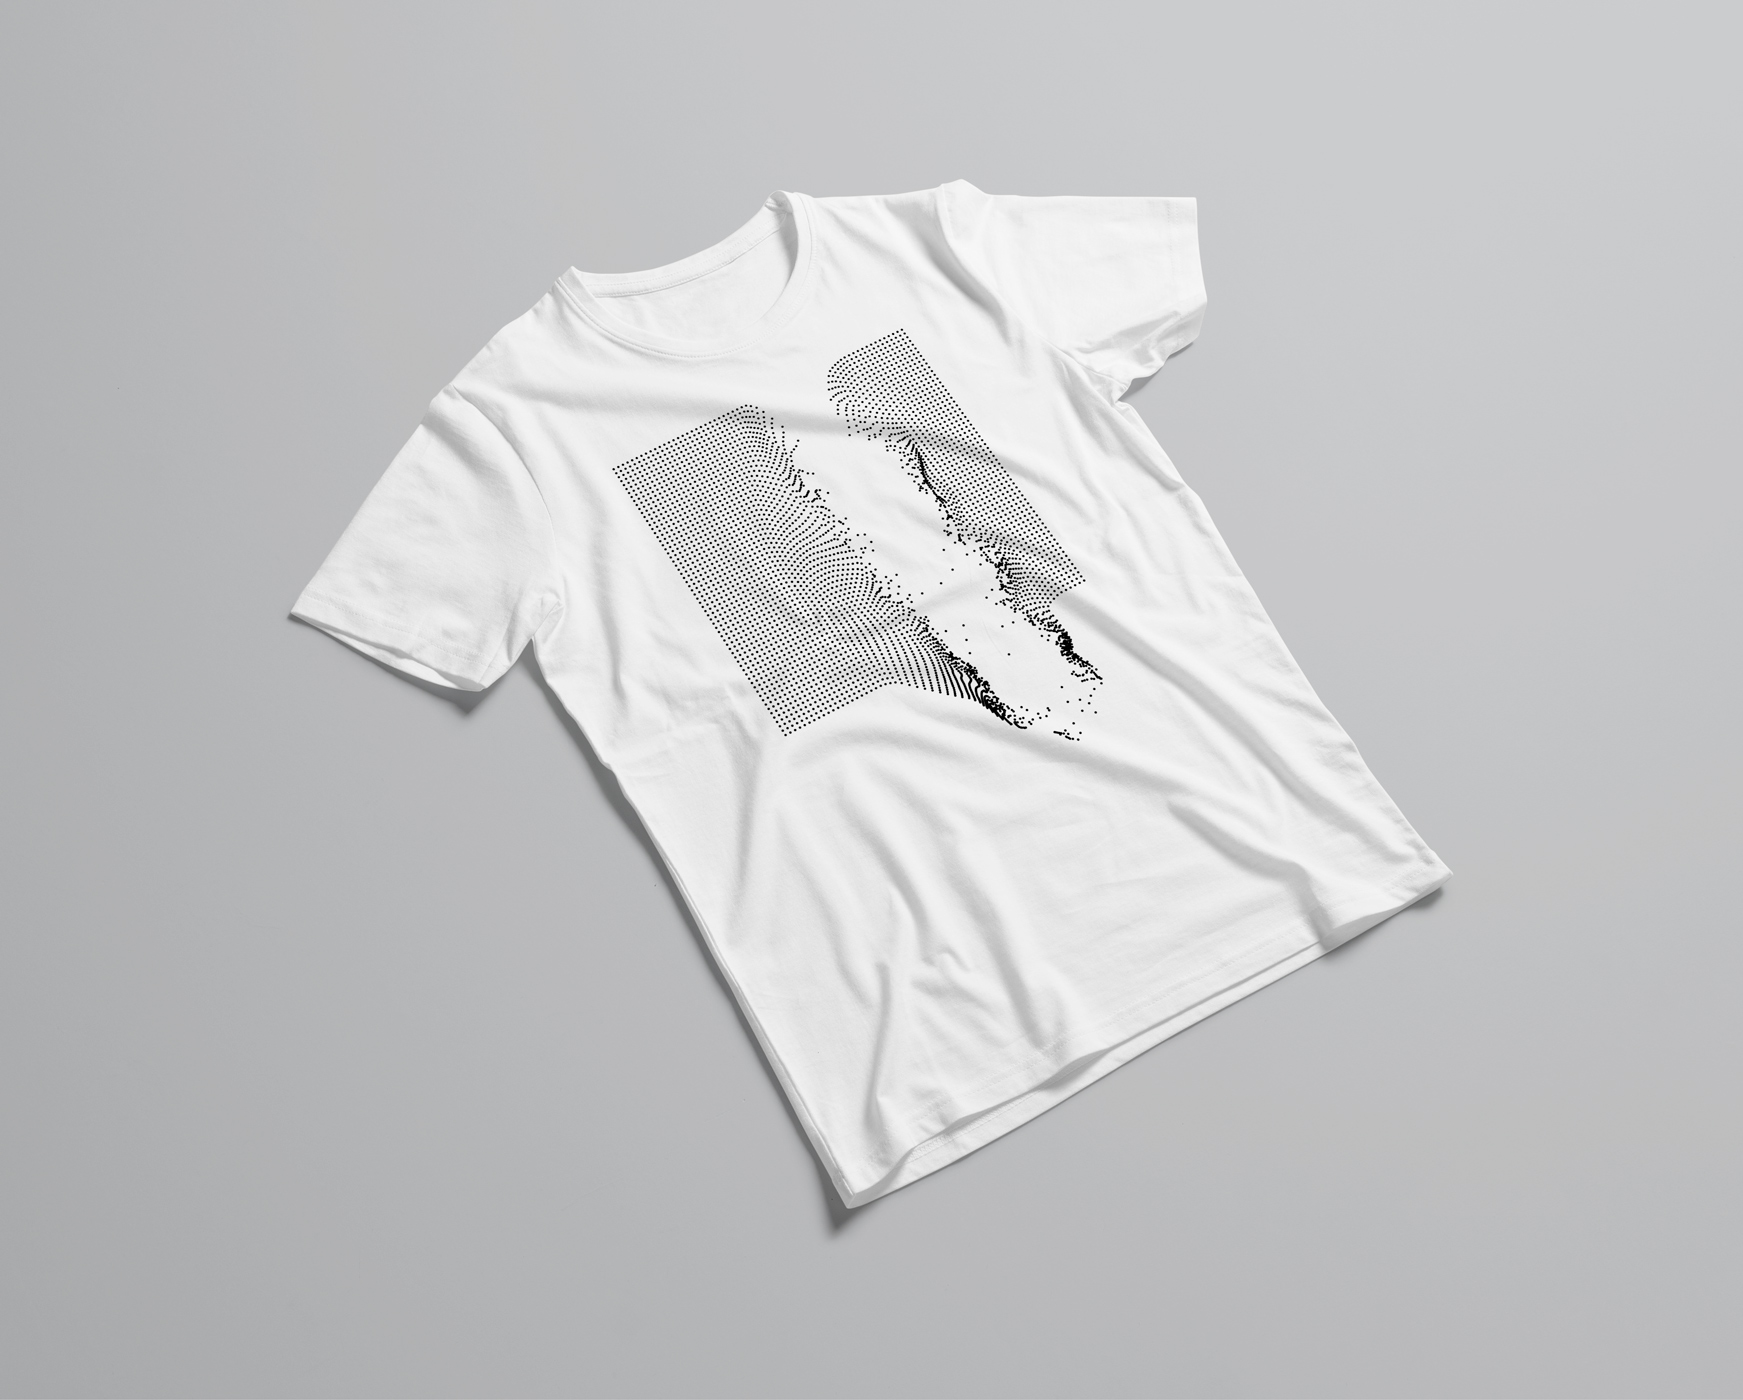 Broken Geometries T-Shirt Omar Careaga